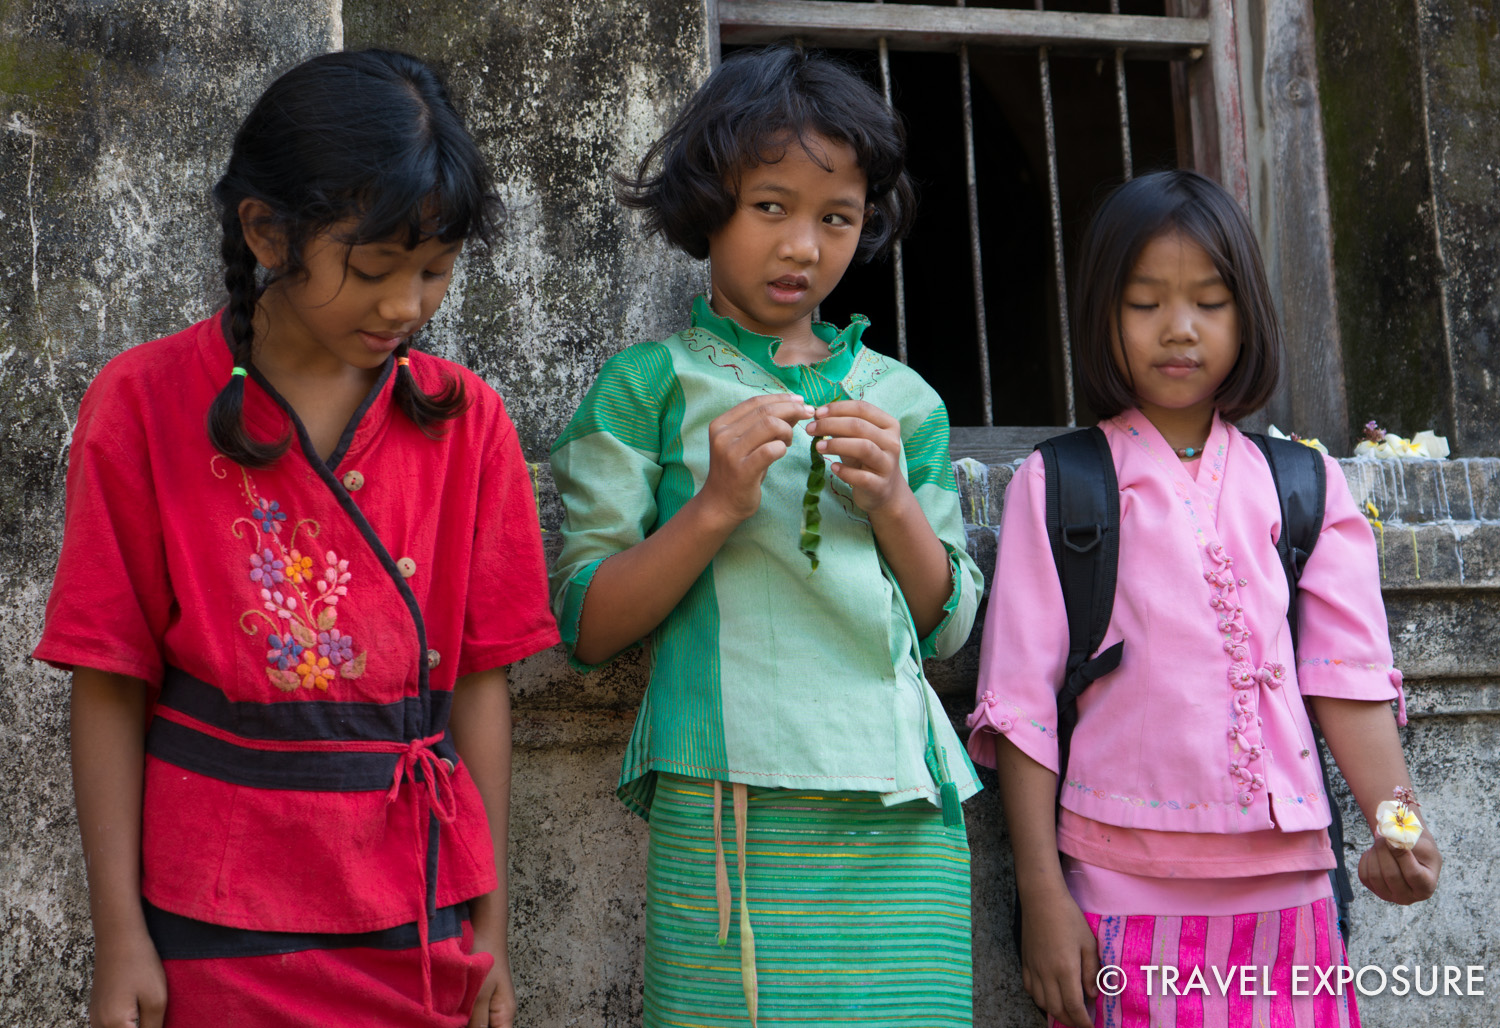 WEEK OF NOVEMBER 3 Children wear traditional Shan dresses at the Wat Pa Pao Temple in Chiang Mai, Thailand.